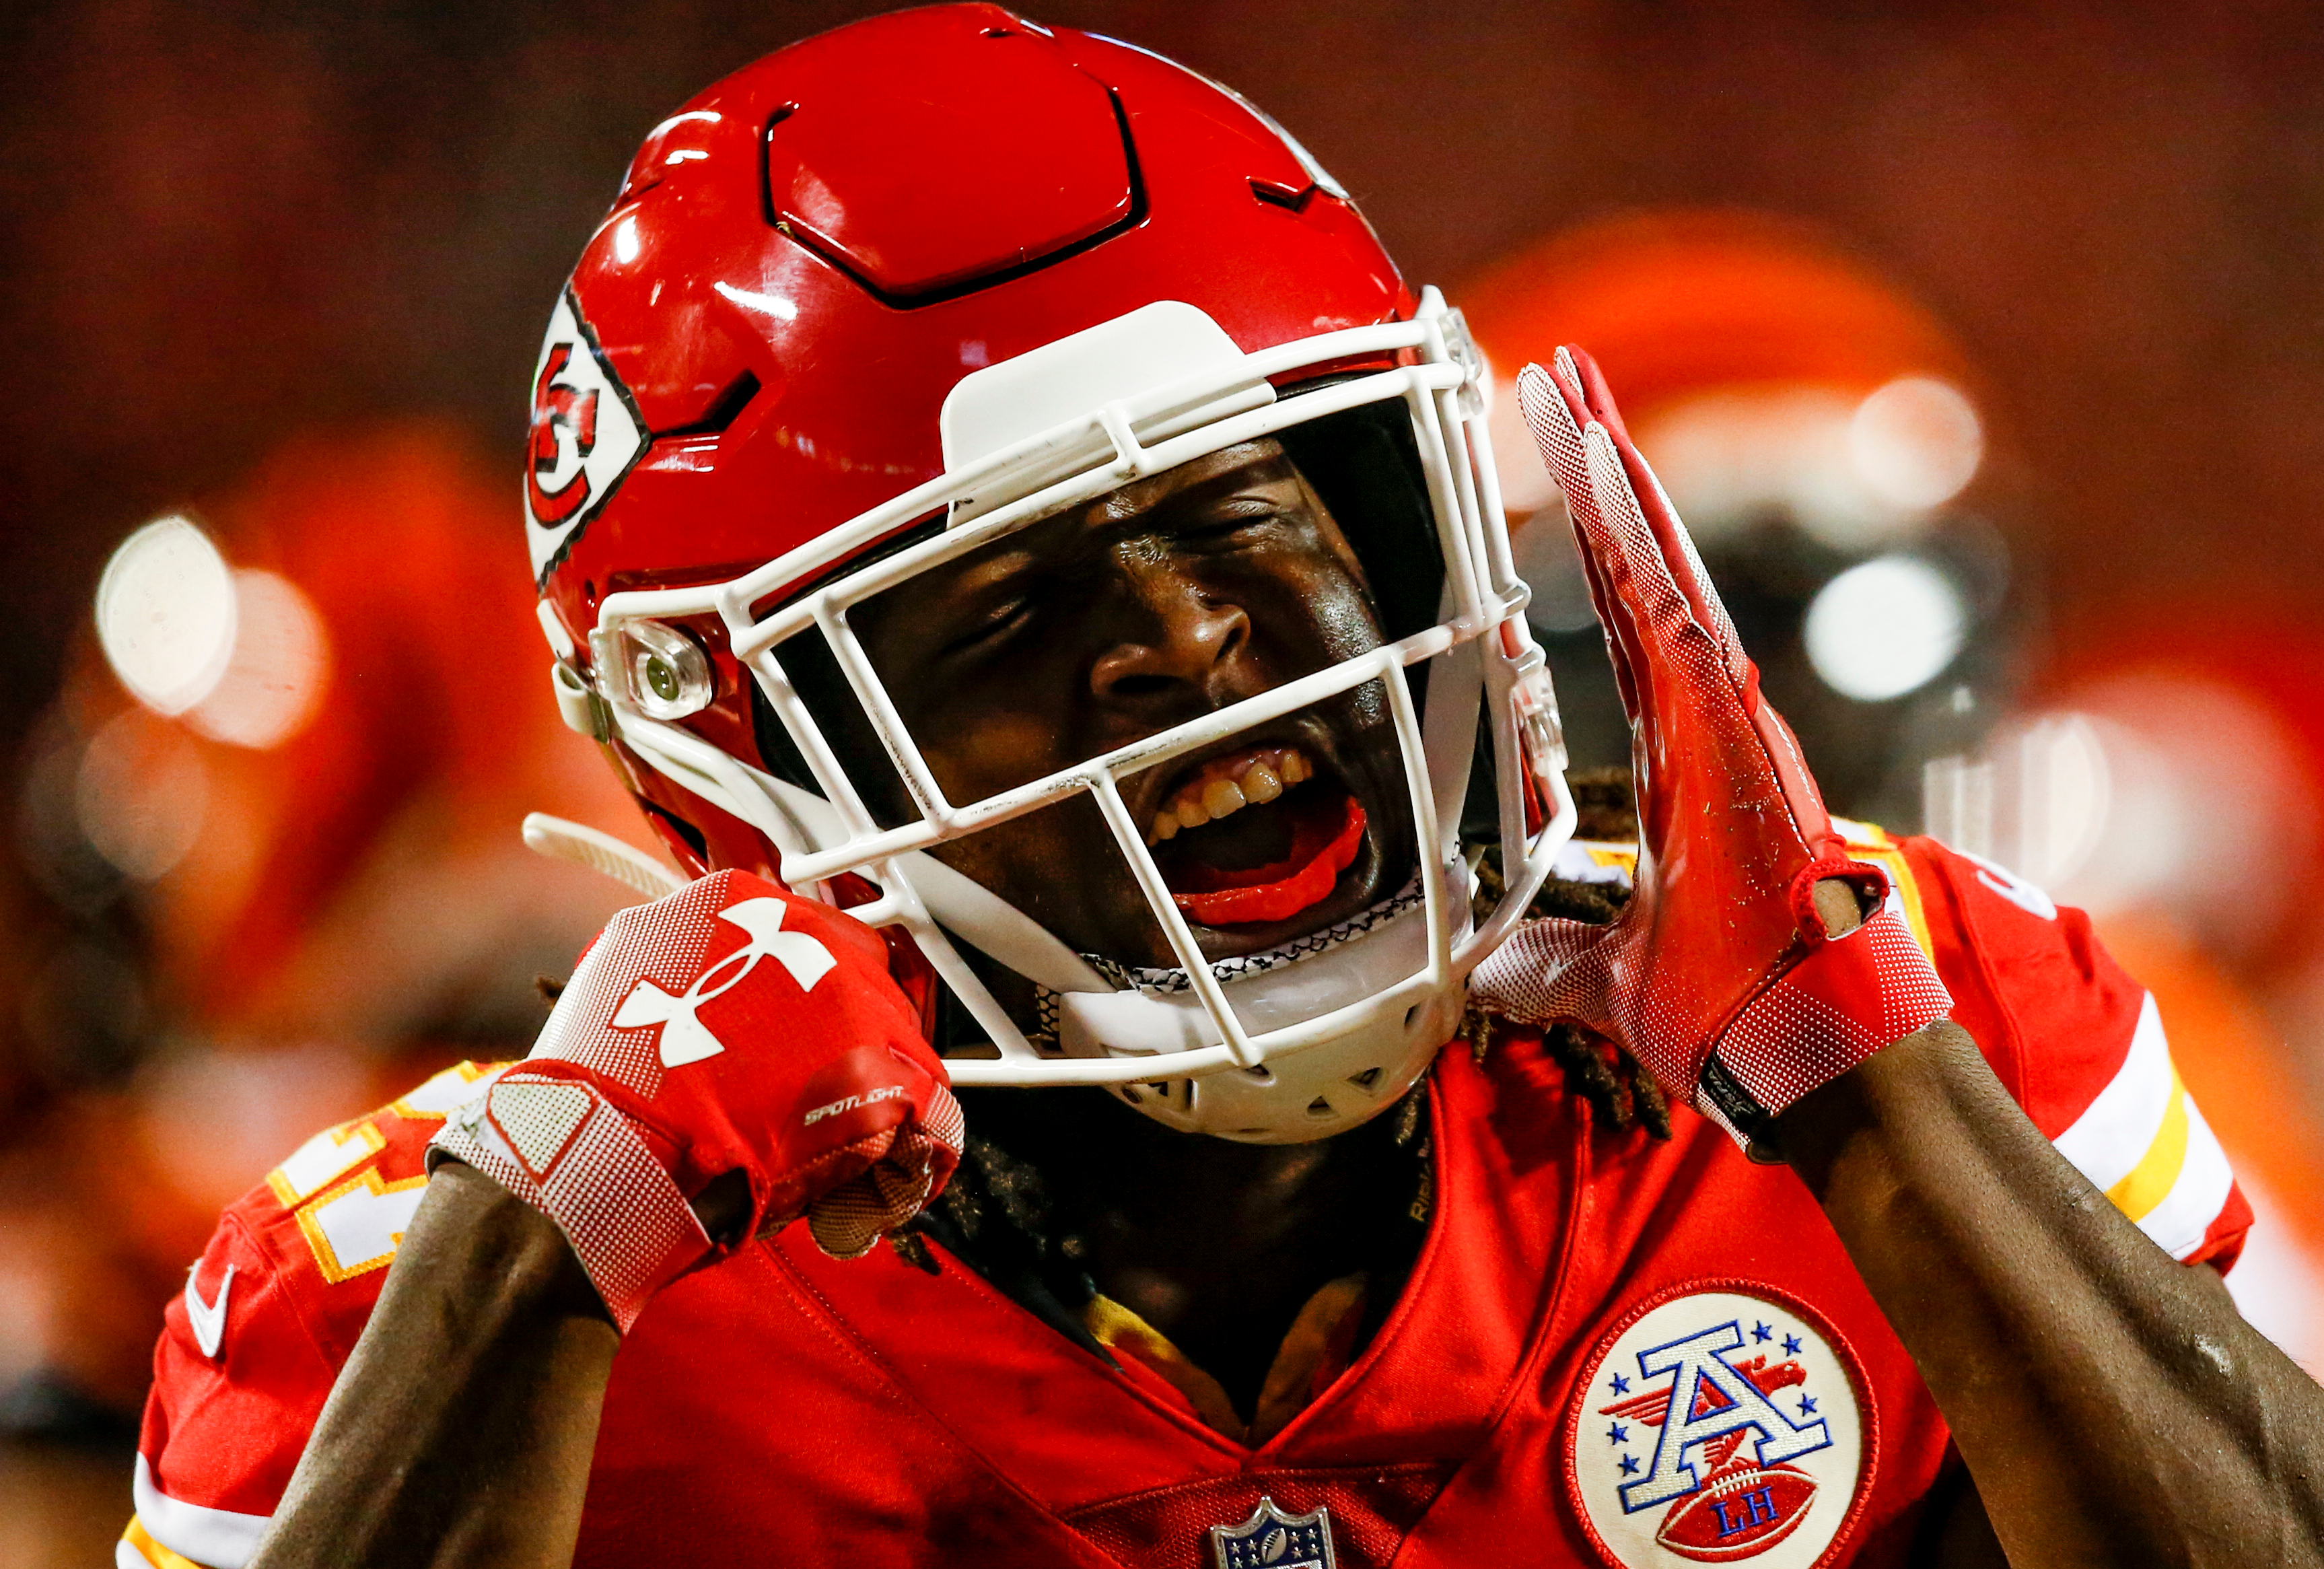 KANSAS CITY, MO - OCTOBER 21: Kareem Hunt #27 of the Kansas City Chiefs reacts after a run during the first quarter of the game against the Cincinnati Bengals at Arrowhead Stadium on October 21, 2018 in Kansas City, Kansas. (Photo by David Eulitt/Getty Images)